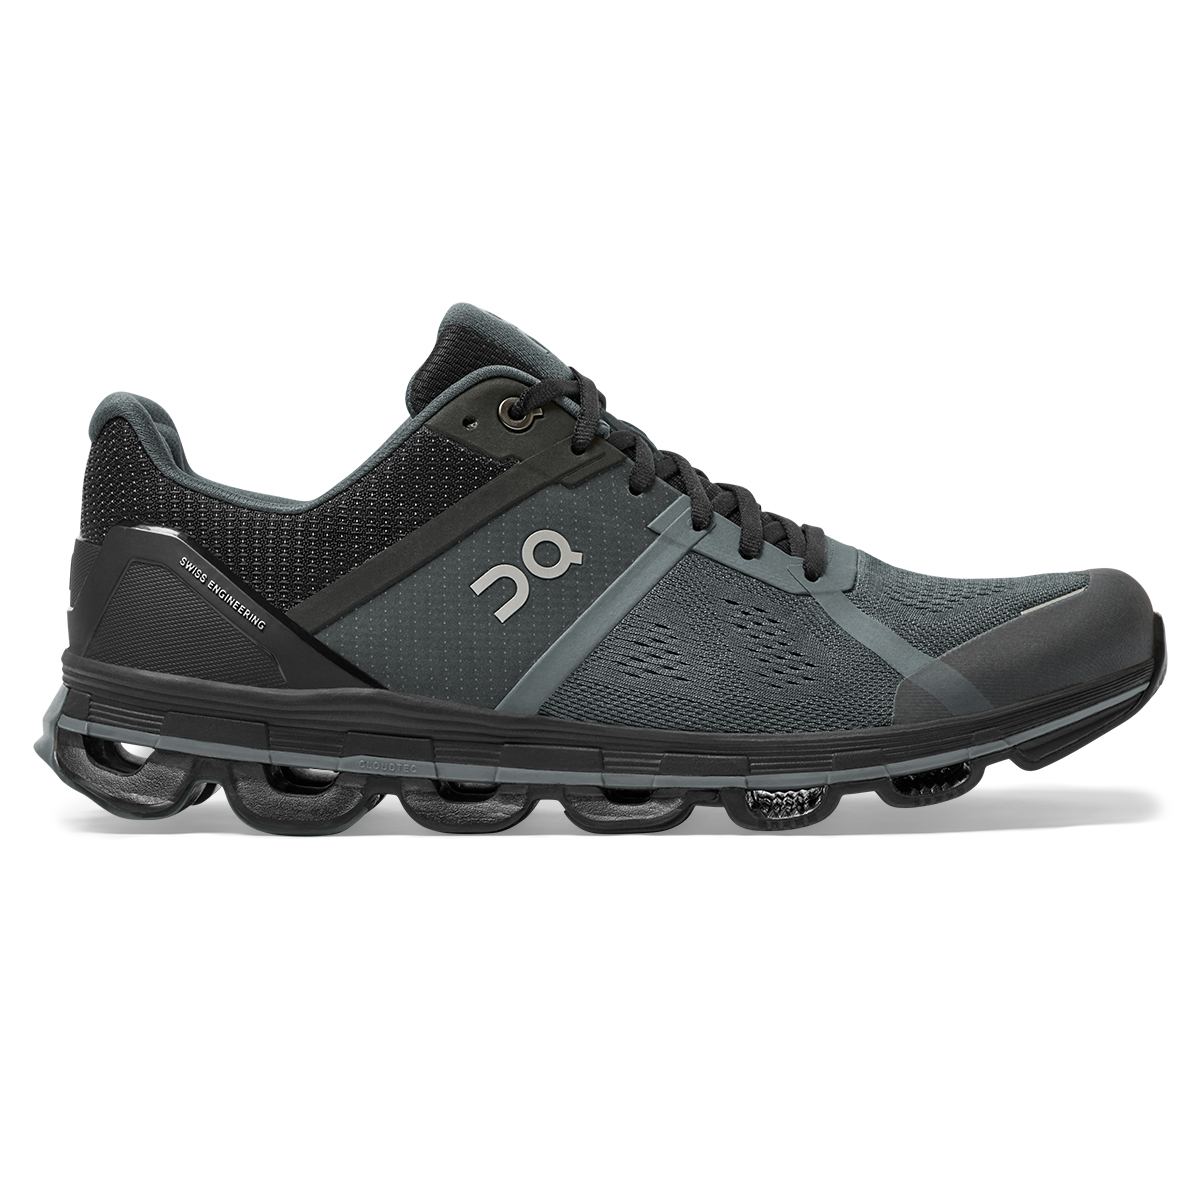 Women's On Cloudace Running Shoe - Color: Graphite/Rock - Size: 5 - Width: Regular, Graphite/Rock, large, image 1